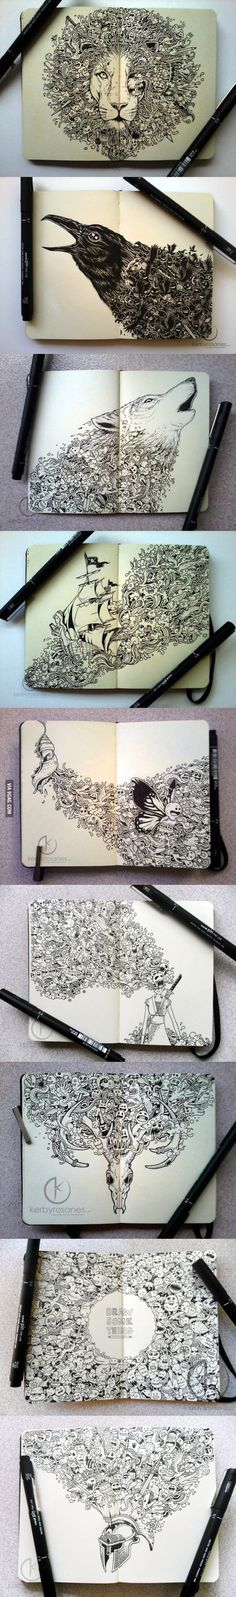 Incredible Moleskin drawings